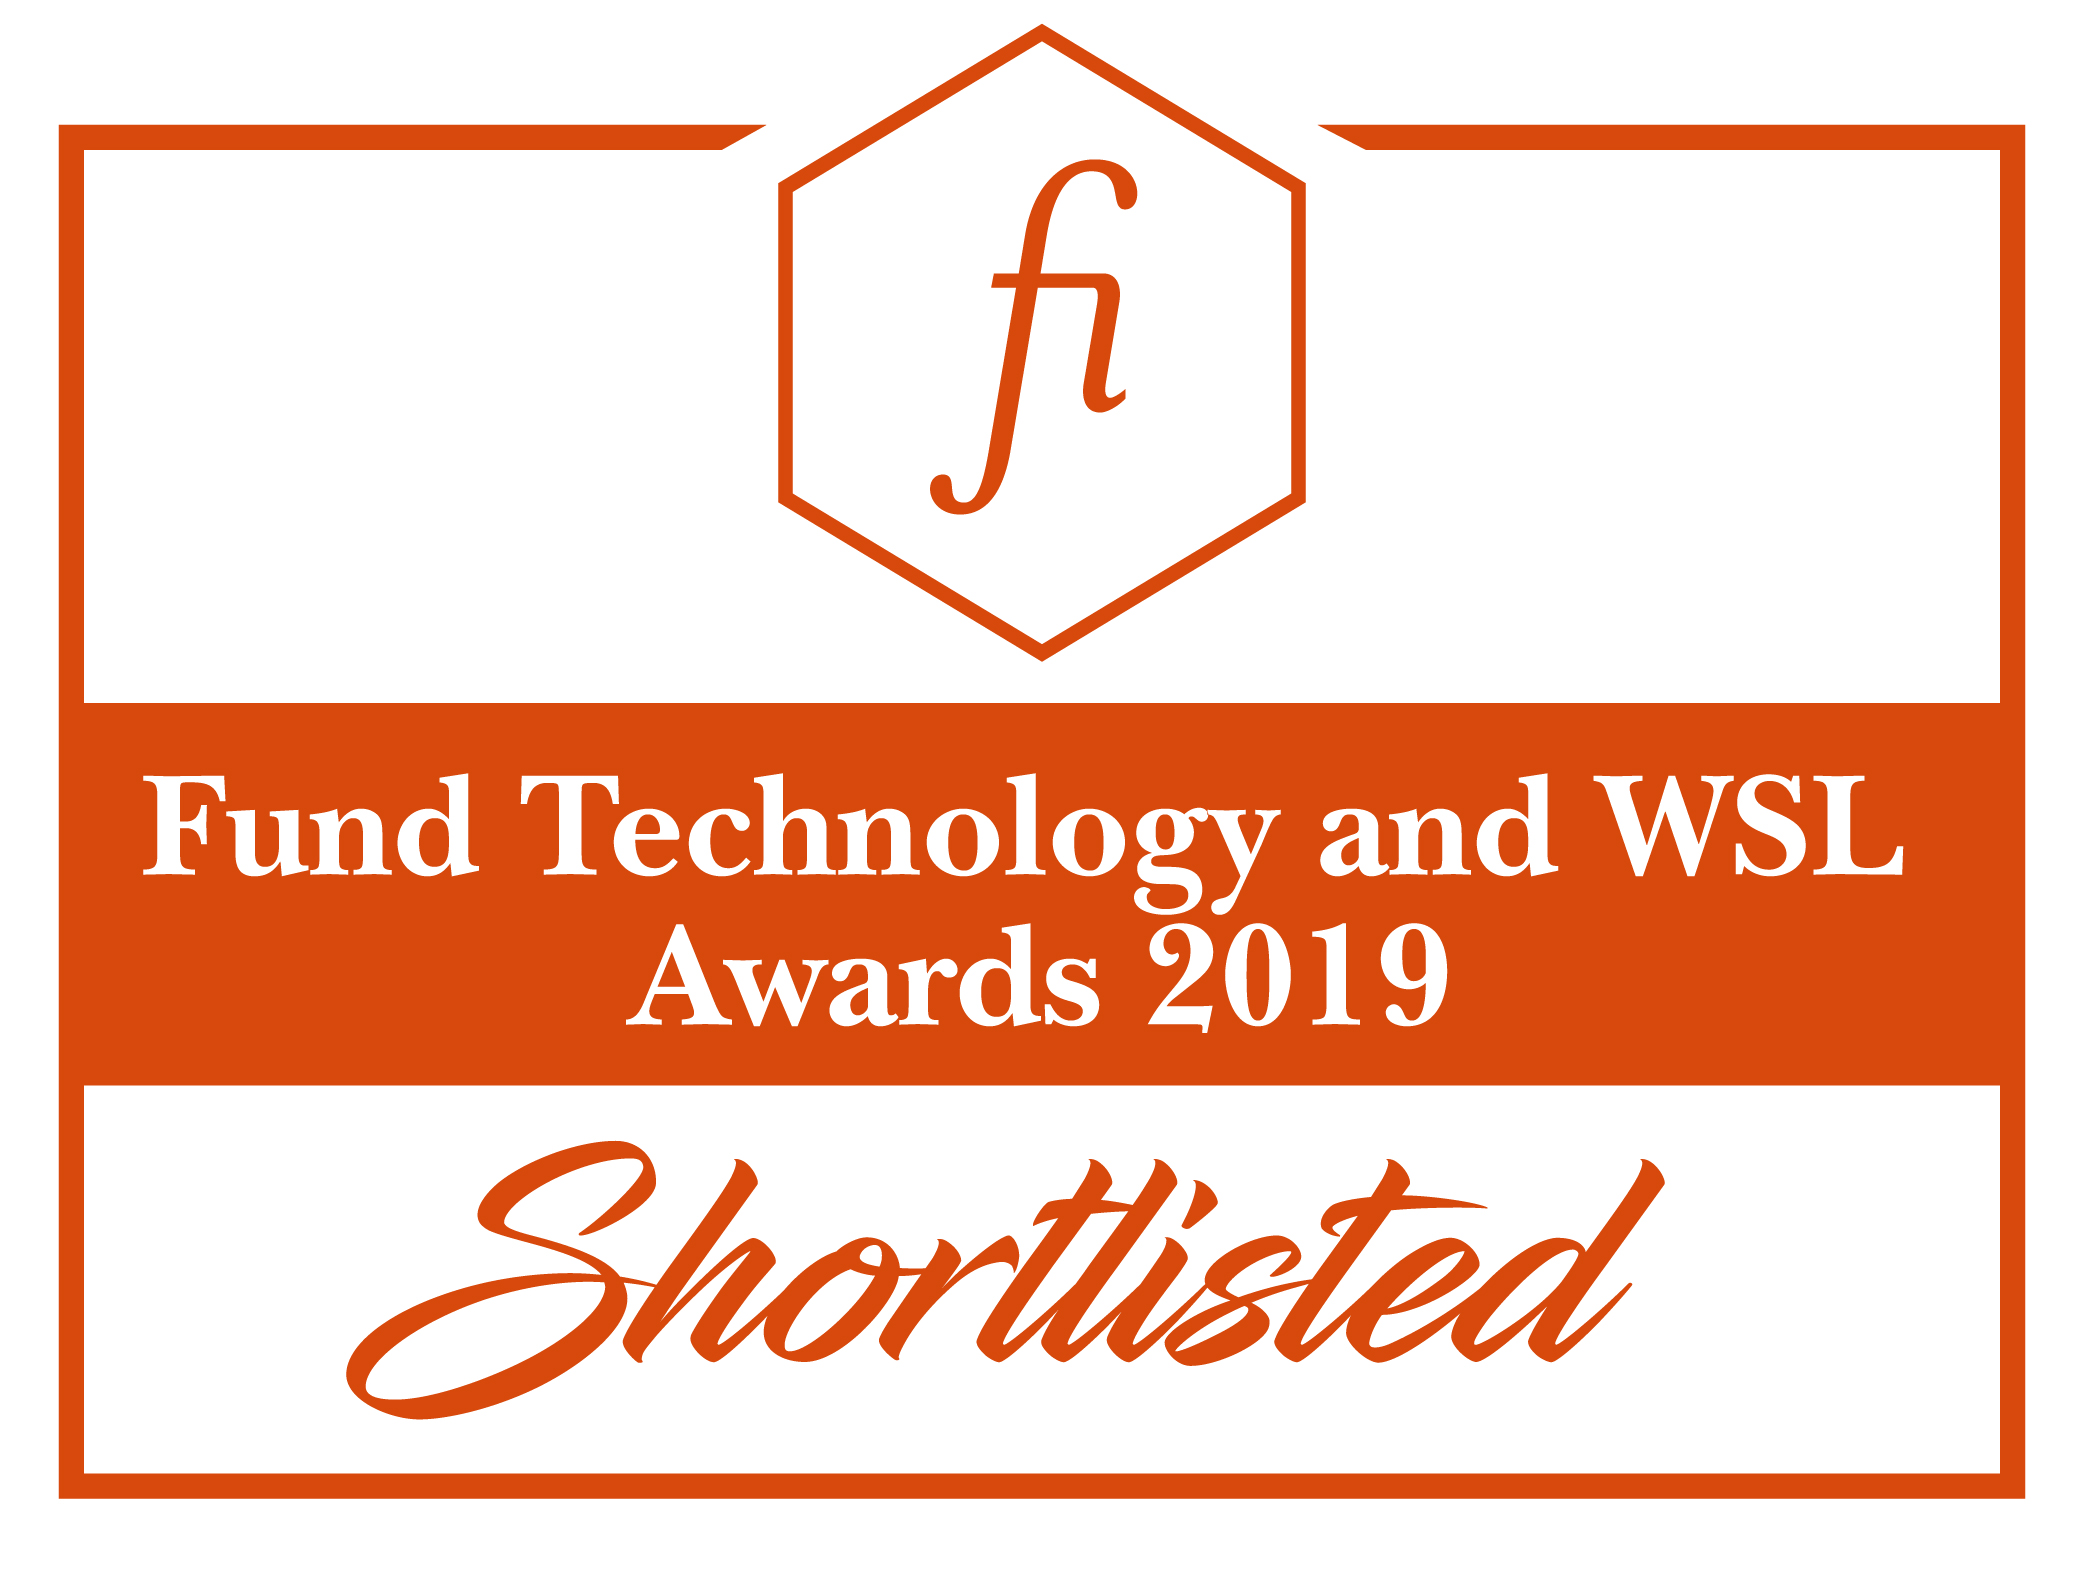 Fund technology and wsl awards 2019   shortlisted logo